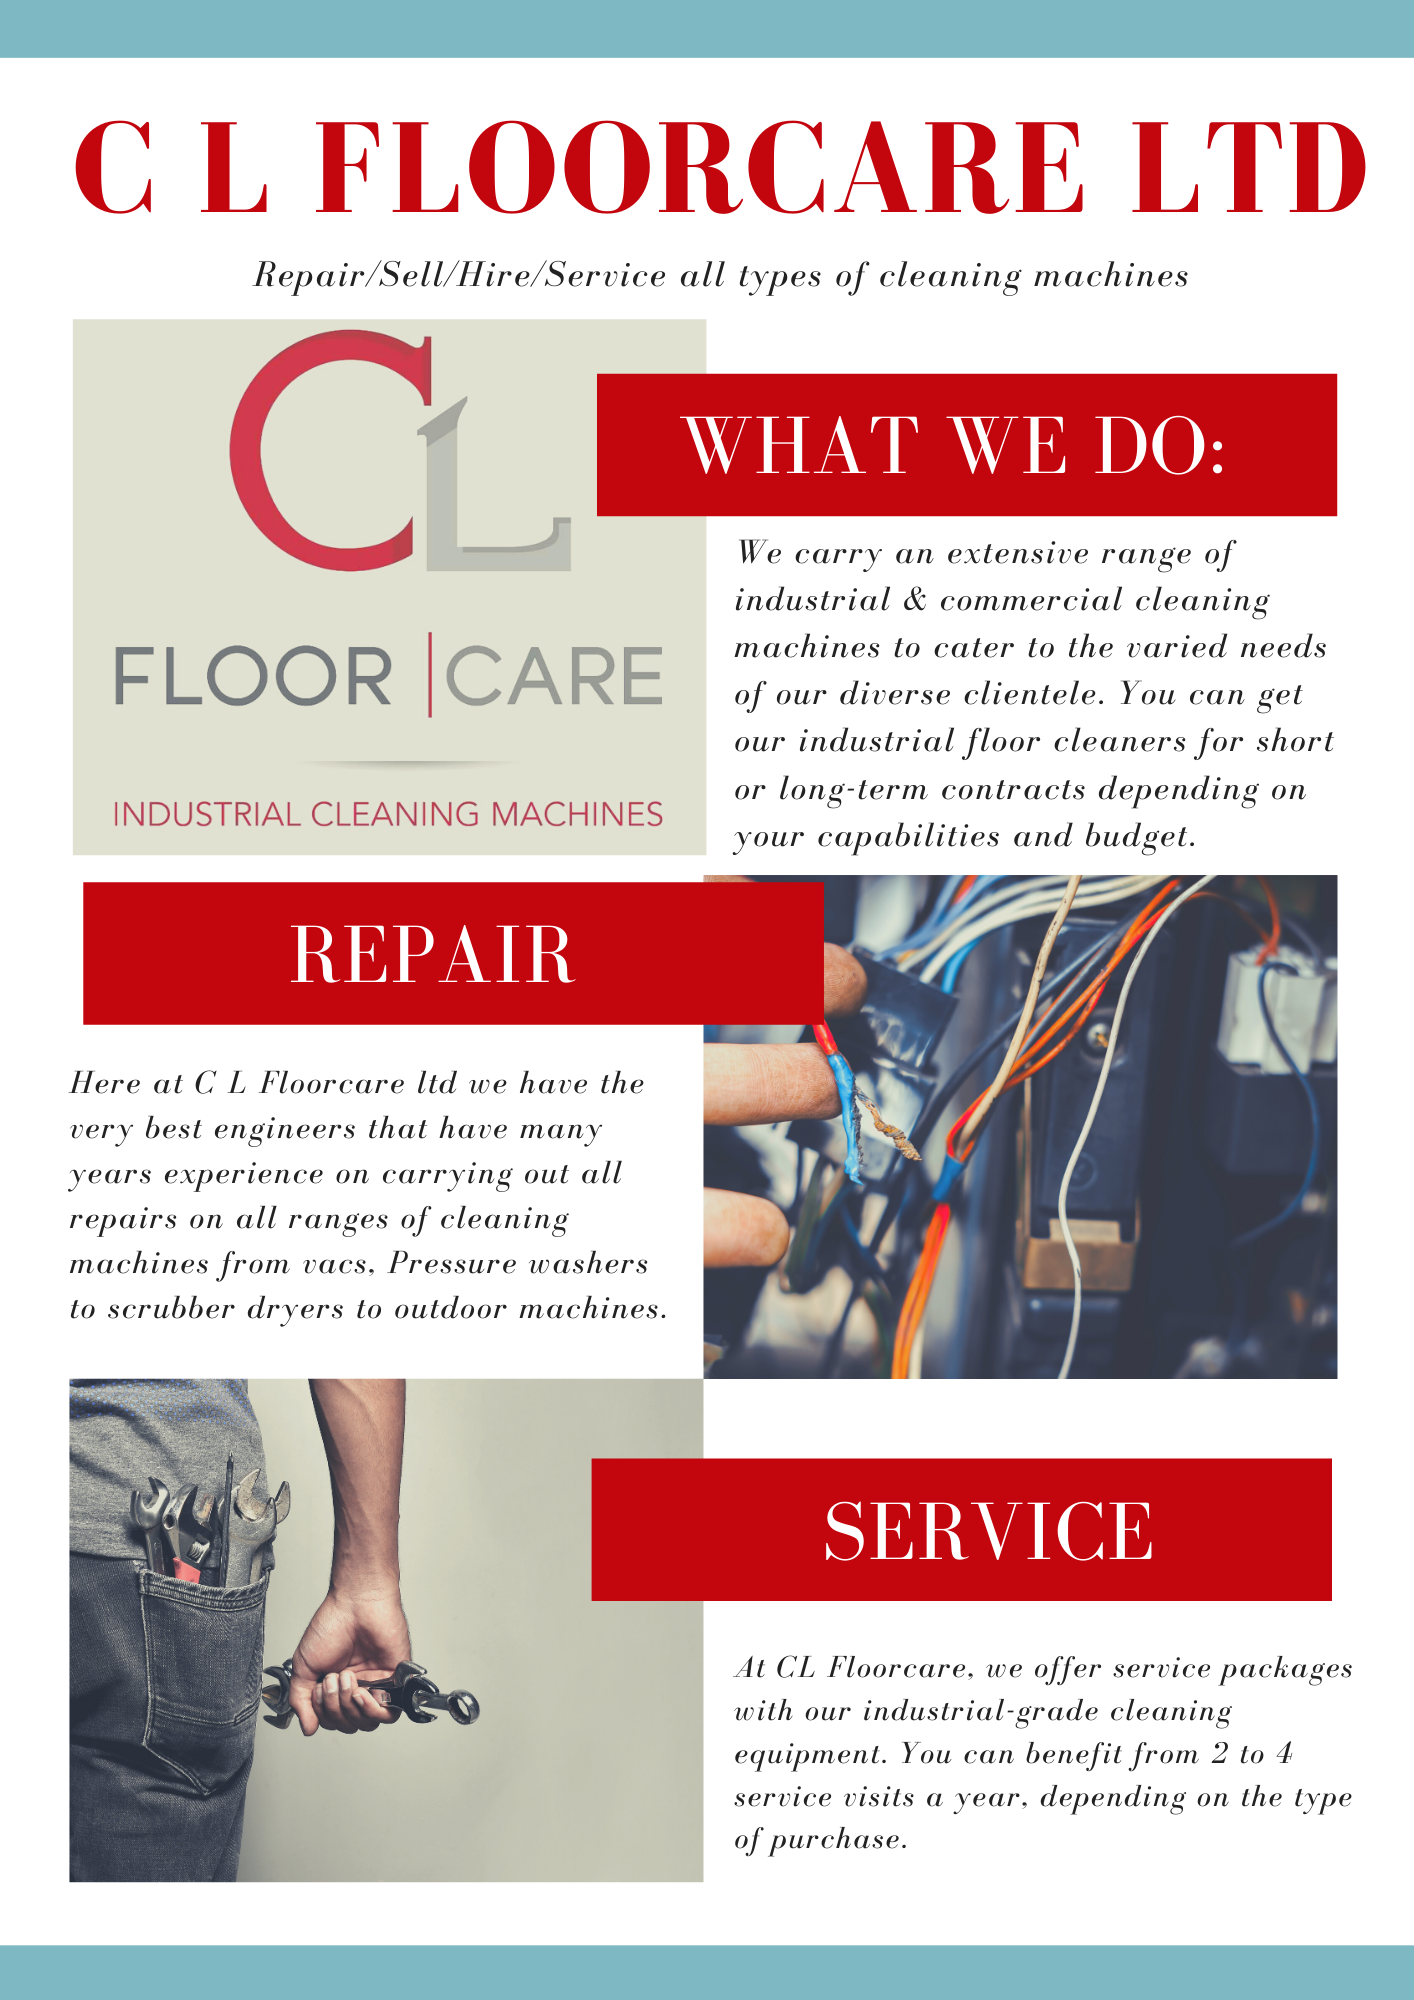 C L Floorcare ltd newsletter